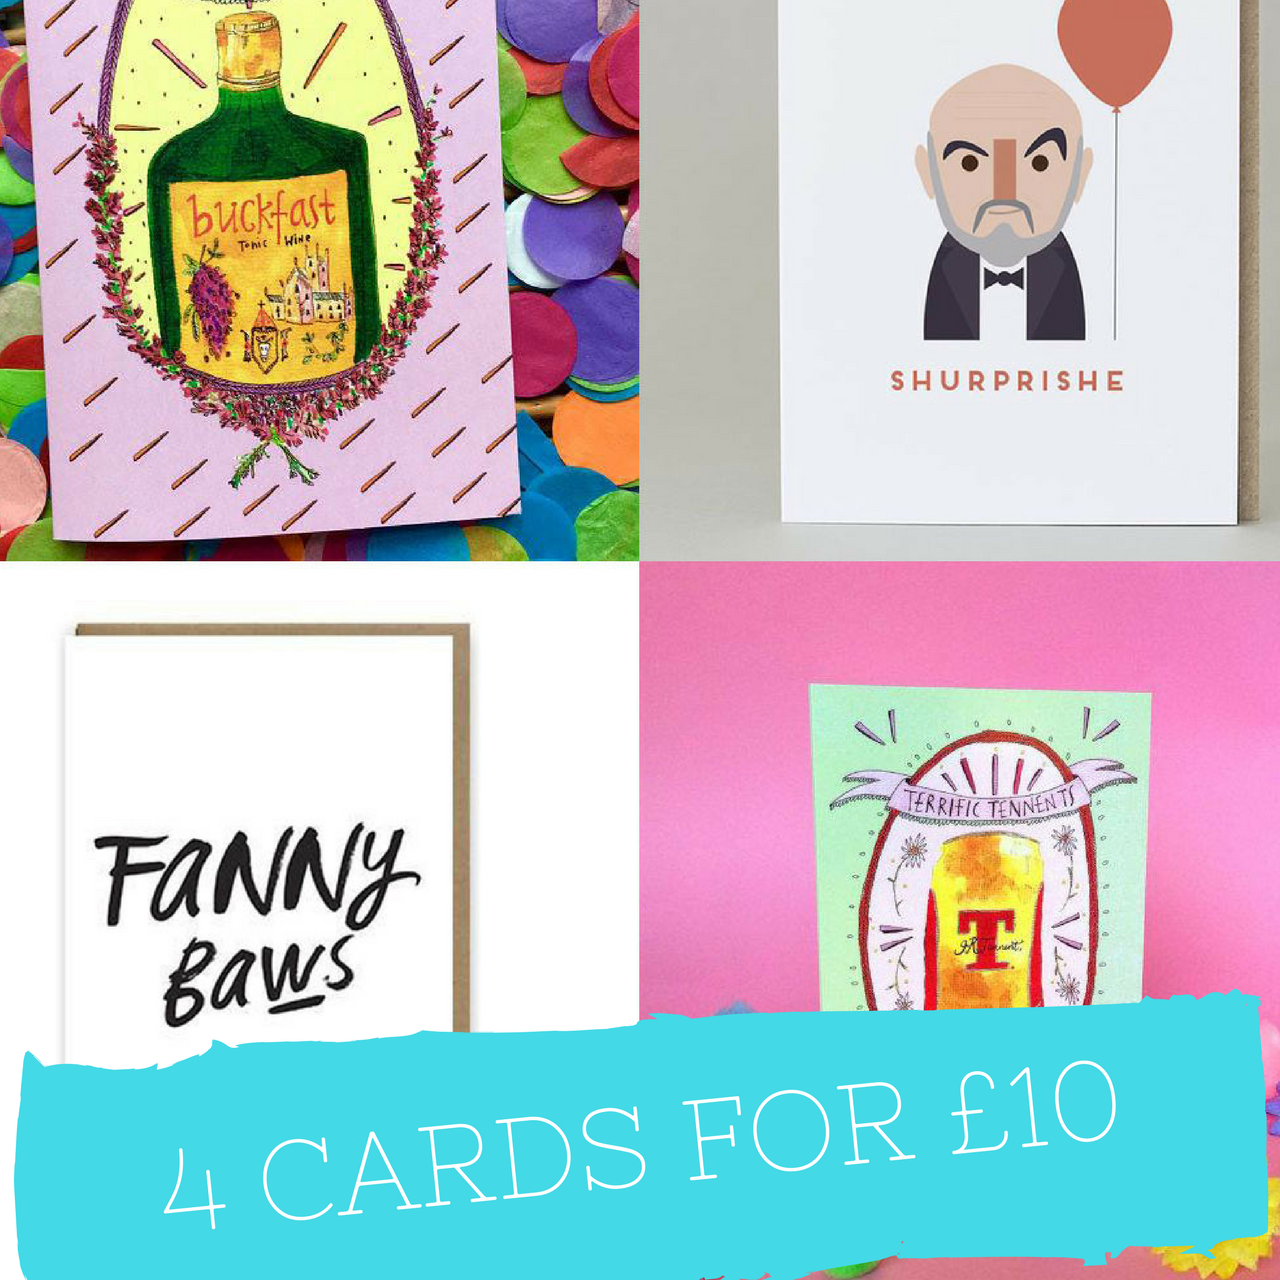 Braw Wee Emporium 4 cards for £10